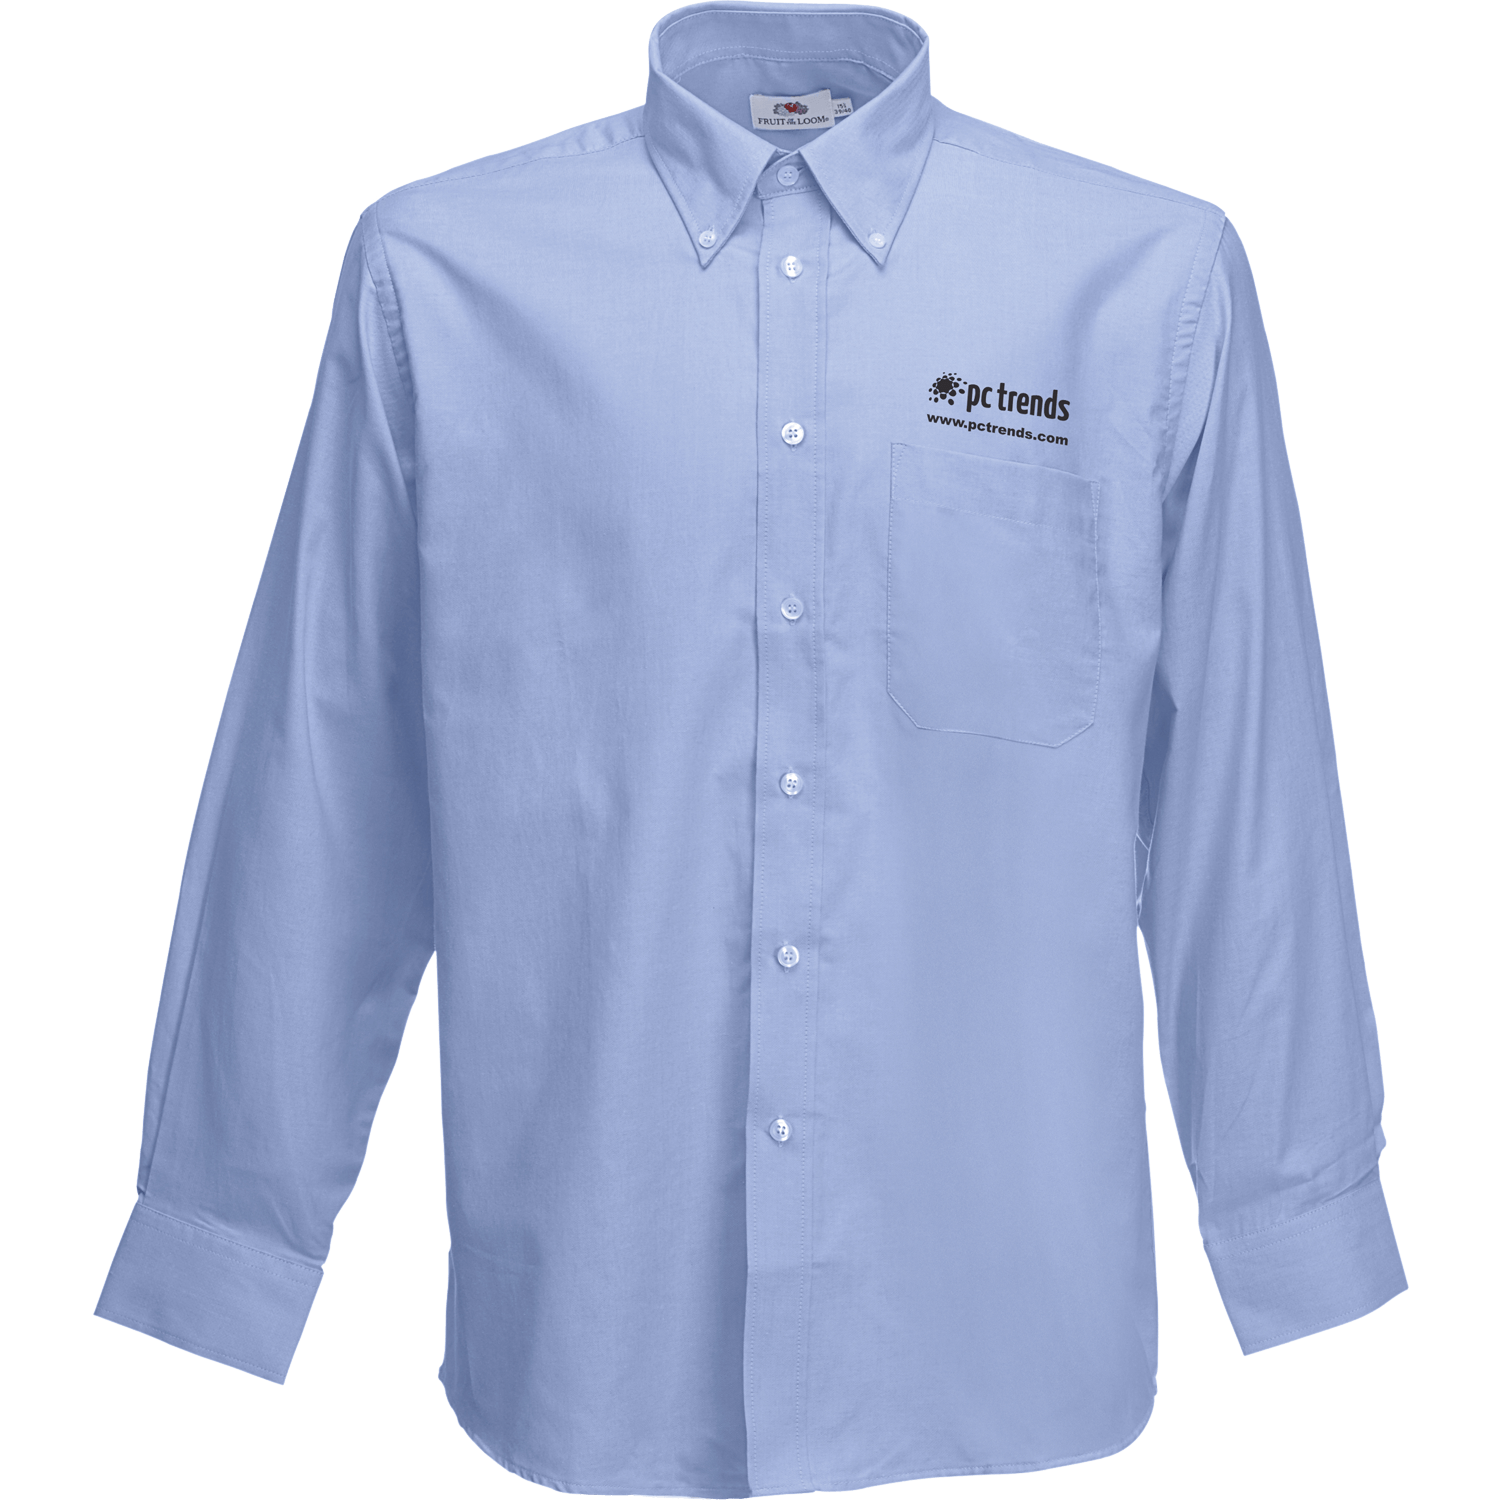 Fruit of the Loom Premium Long Sleeve Oxford Shirt